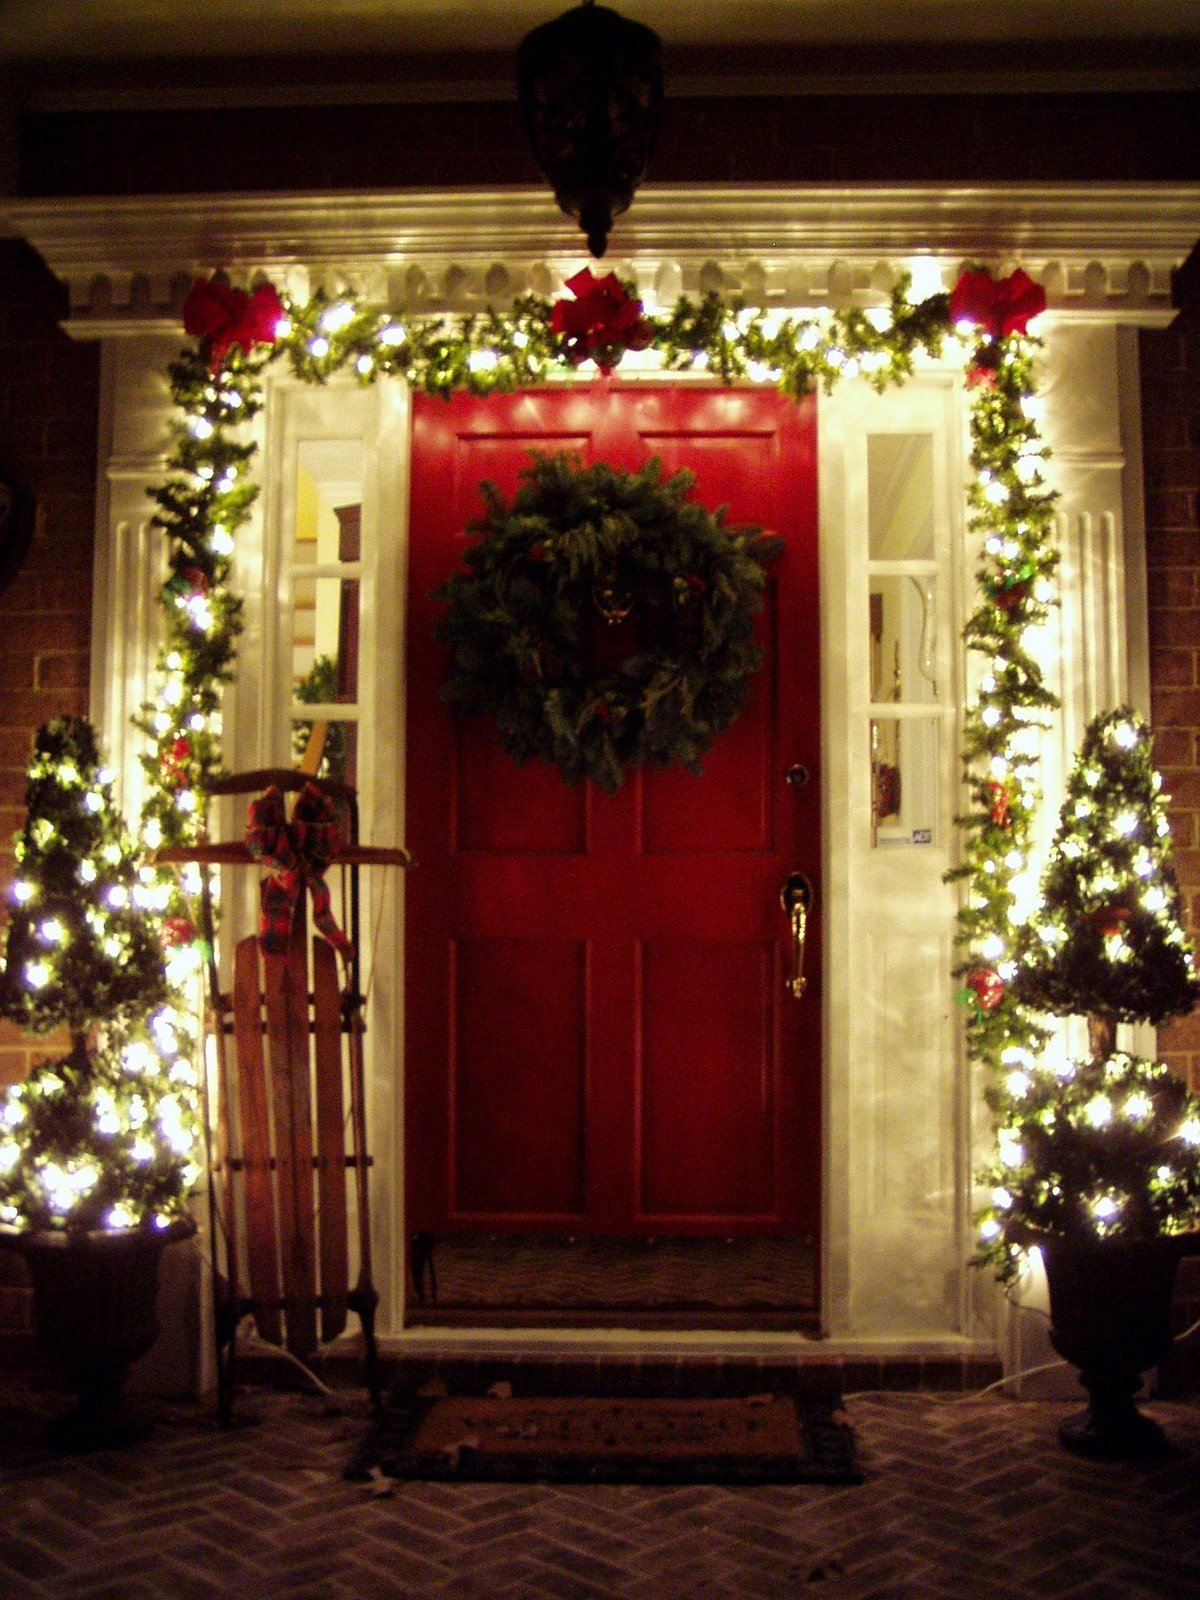 10 Awesome Front Door Christmas Decorating Ideas decorating house for christmas ideas bjyapu how to decorate your 2020